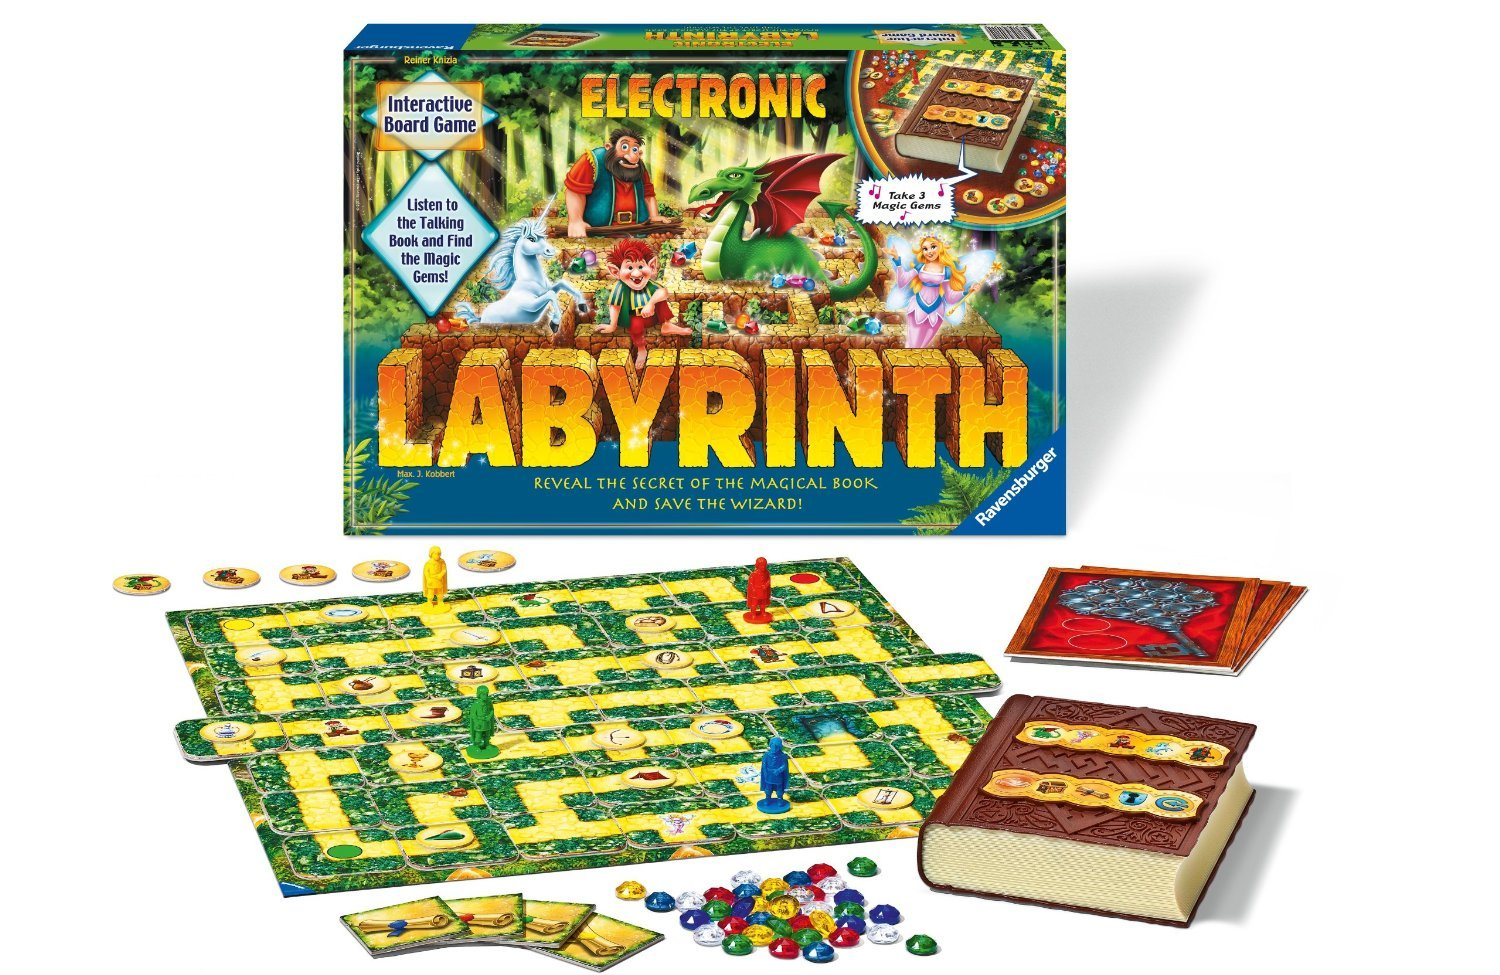 Ravensburger 26551 Colouring Electronic Labyrinth with 26551 with Colouring Book B00BL67P82, チトセスポーツ テニス&バドSHOP:f64884a7 --- anime-portal.club